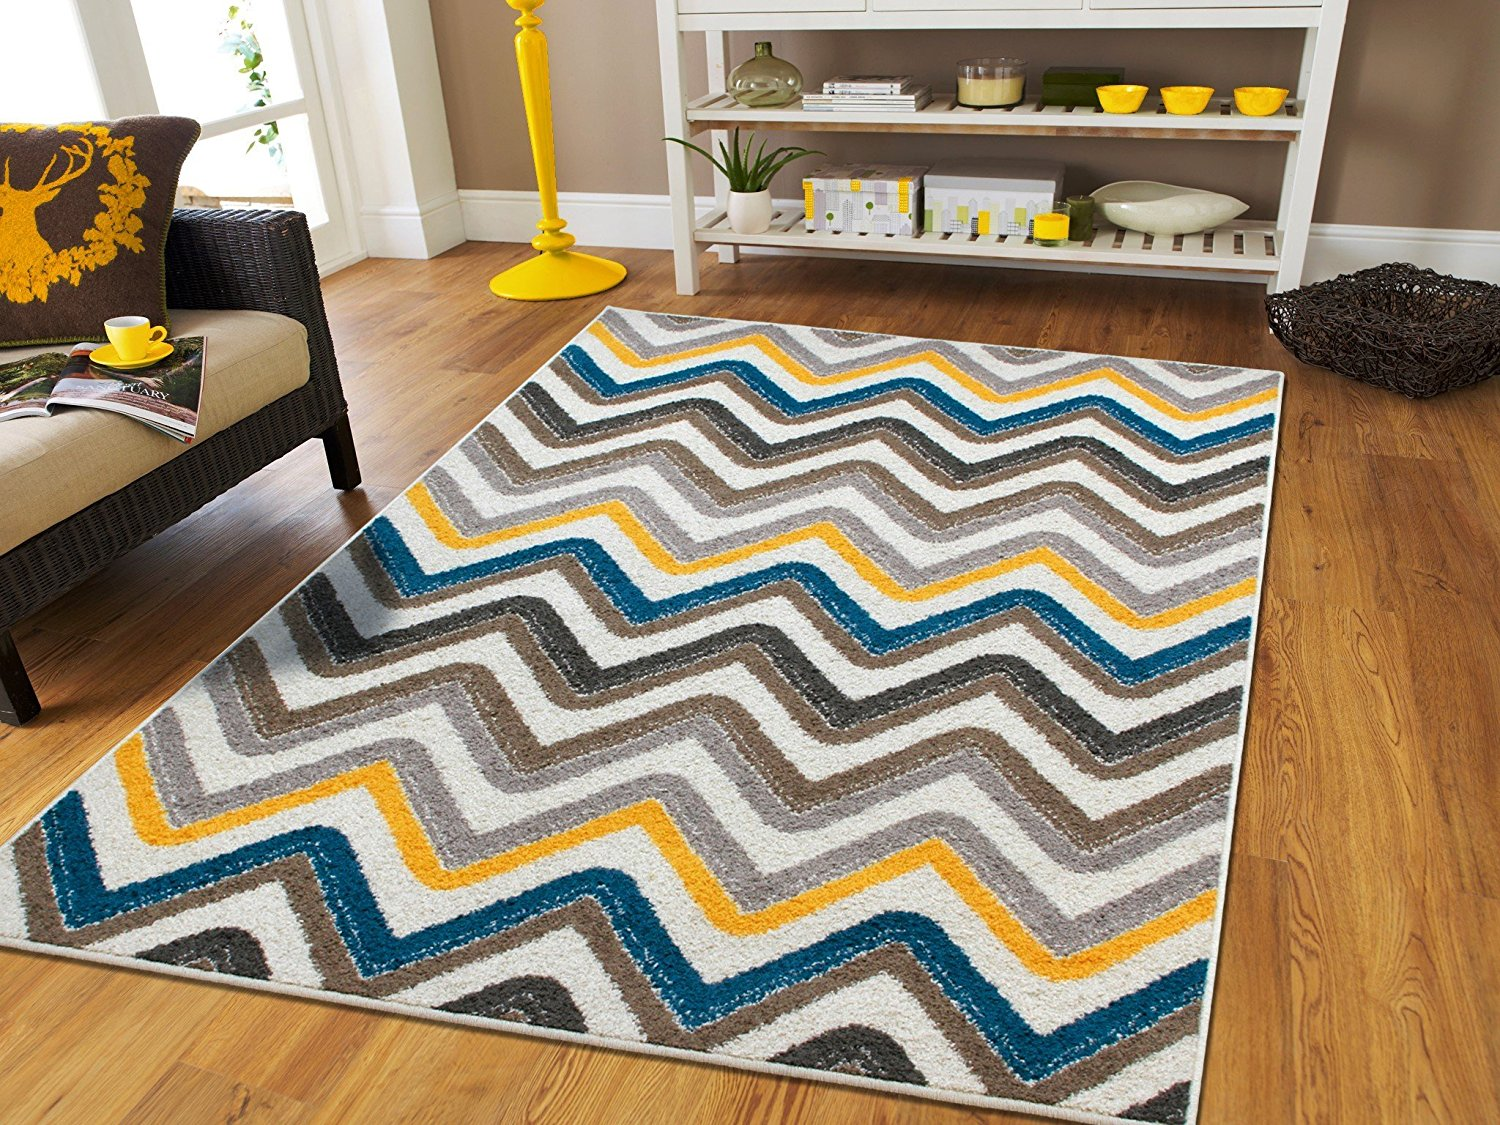 Large 8x11 Rugs For Living Room Zigzag Blue Brown Cream Yellow Grey 8x10 Area Rugs Under 100 Walmart Com